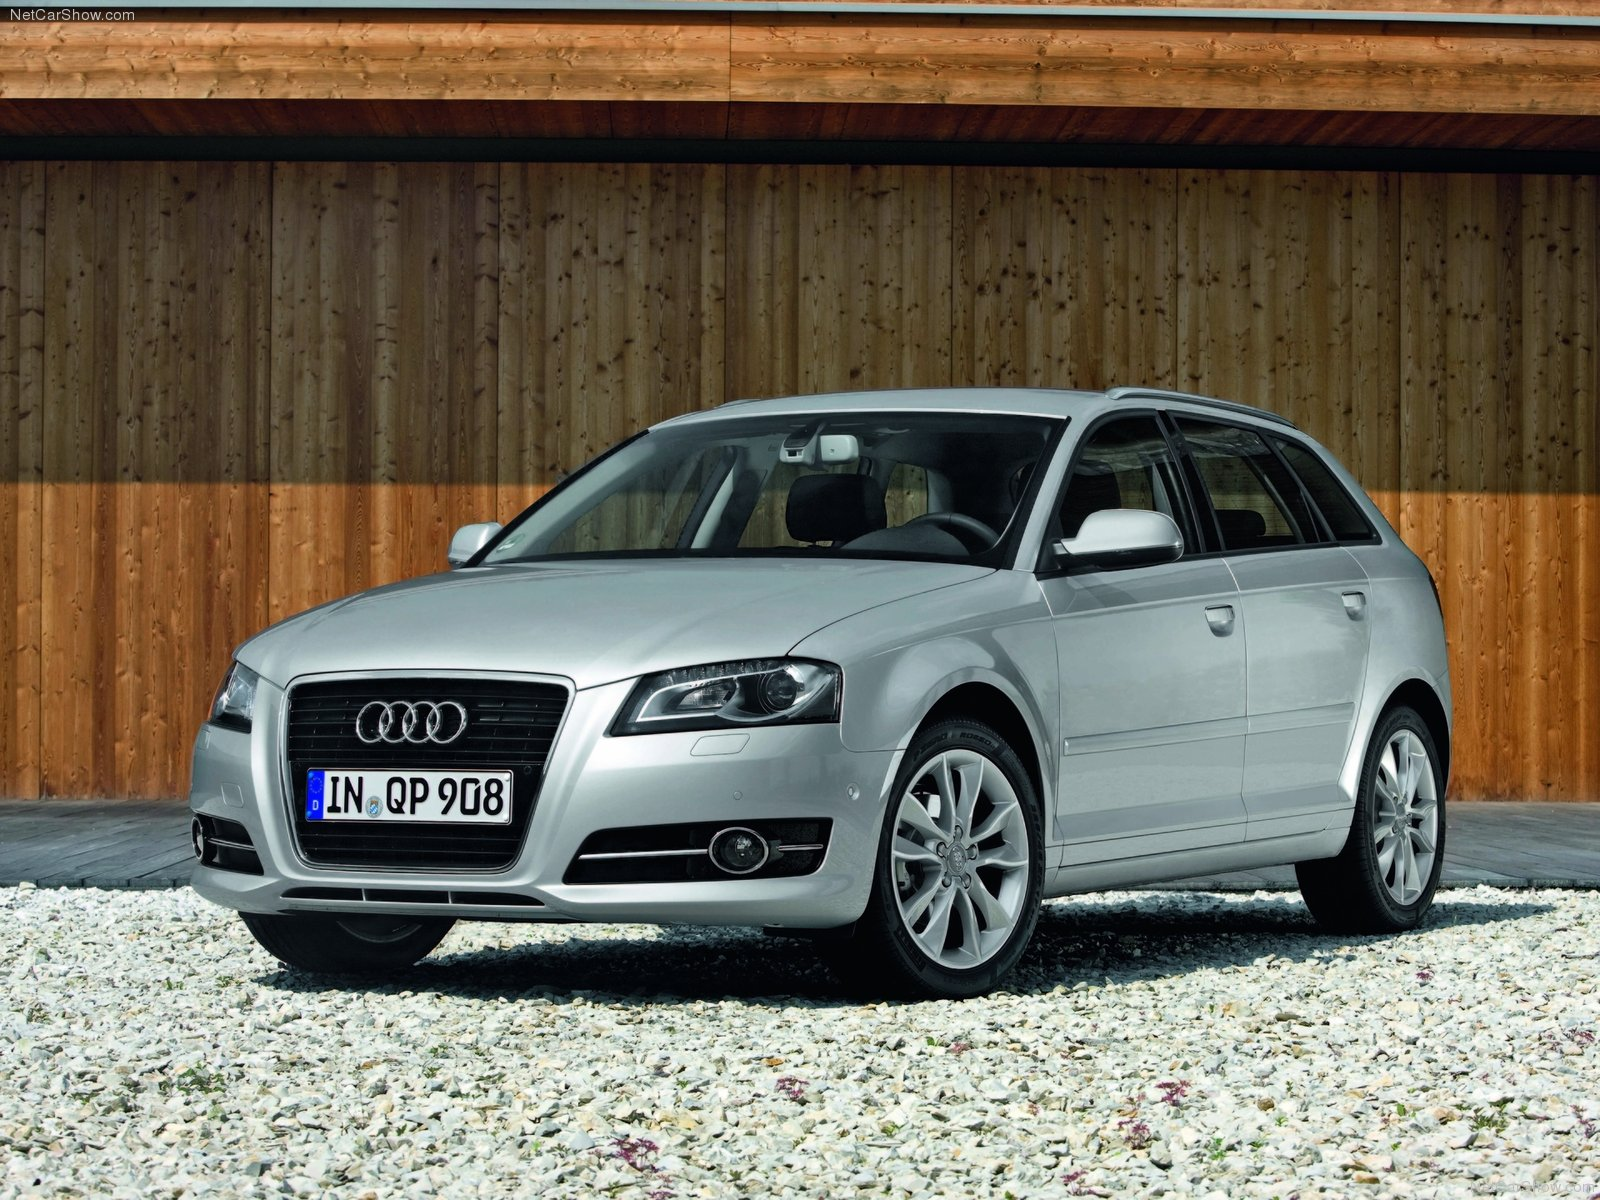 Audi A3 5 Door Hatchback 2011